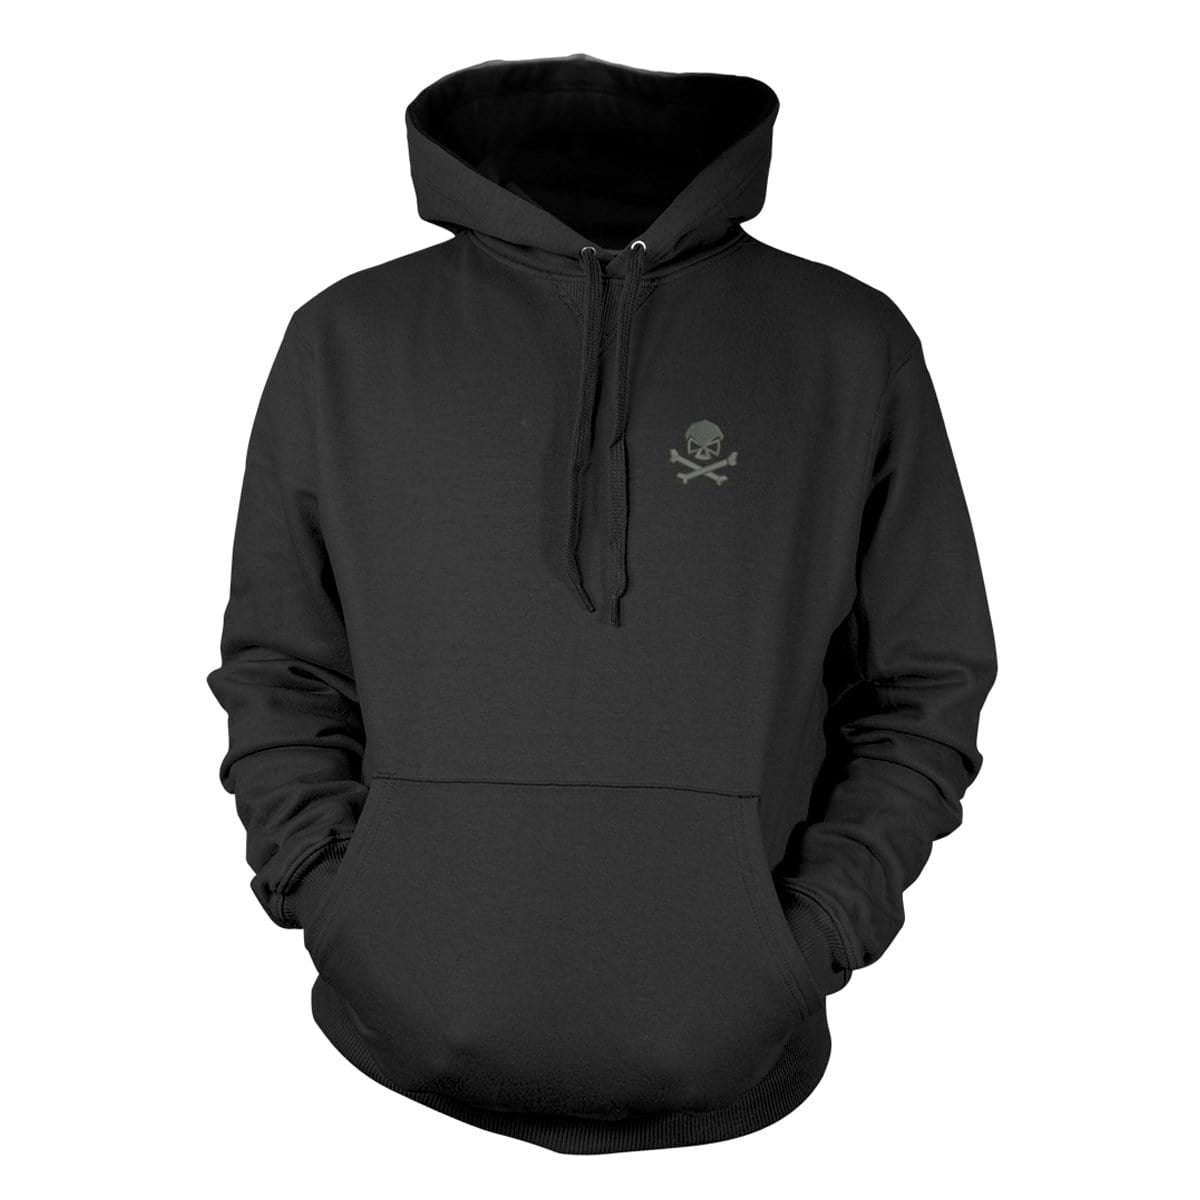 Skull & Bones Hoodie (Embroidered) - Black/Black - Hoodies - Pipe Hitters Union